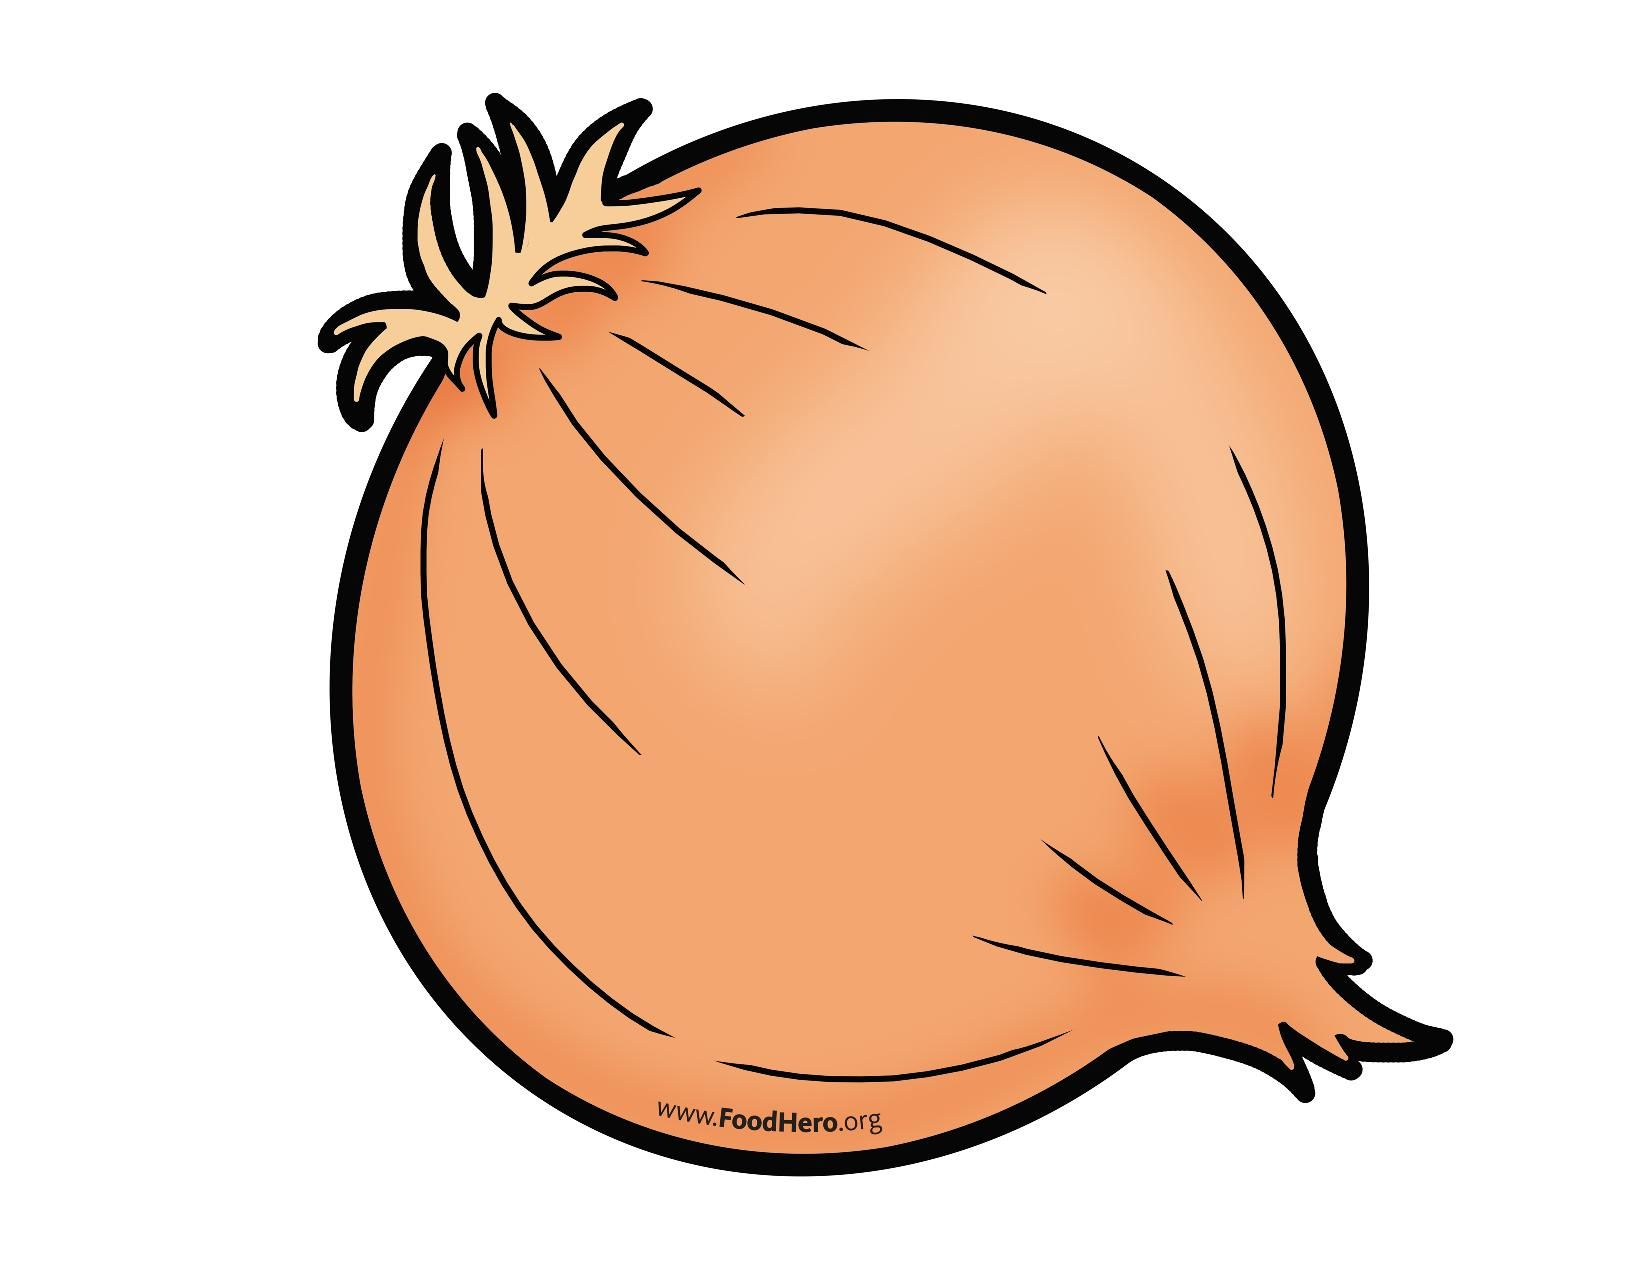 svg freeuse library Colored illustration ingredients vegetables. Onion clipart.